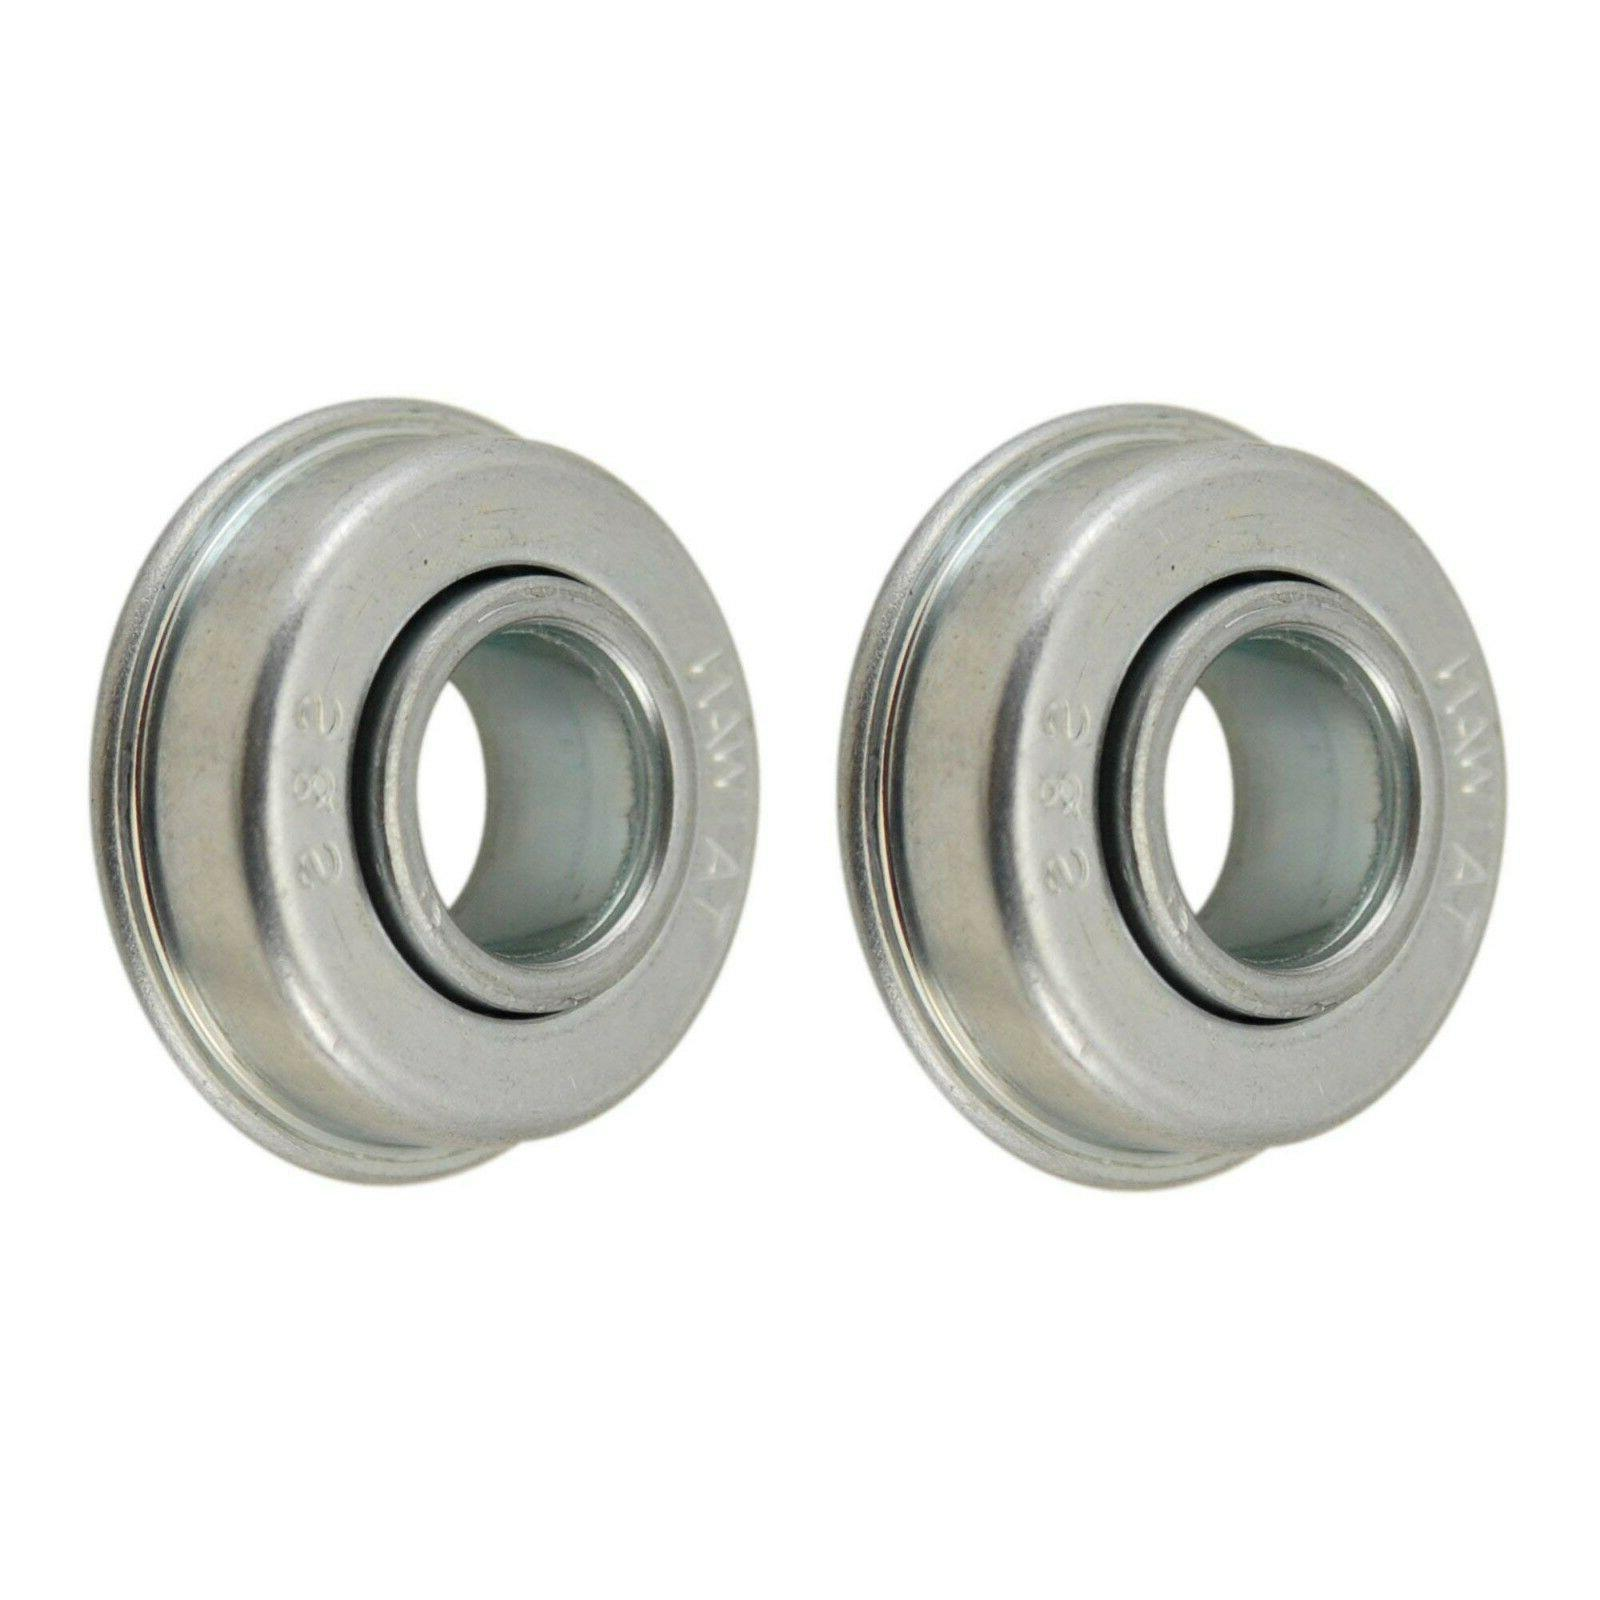 2 oem 104 8699 ball bearings